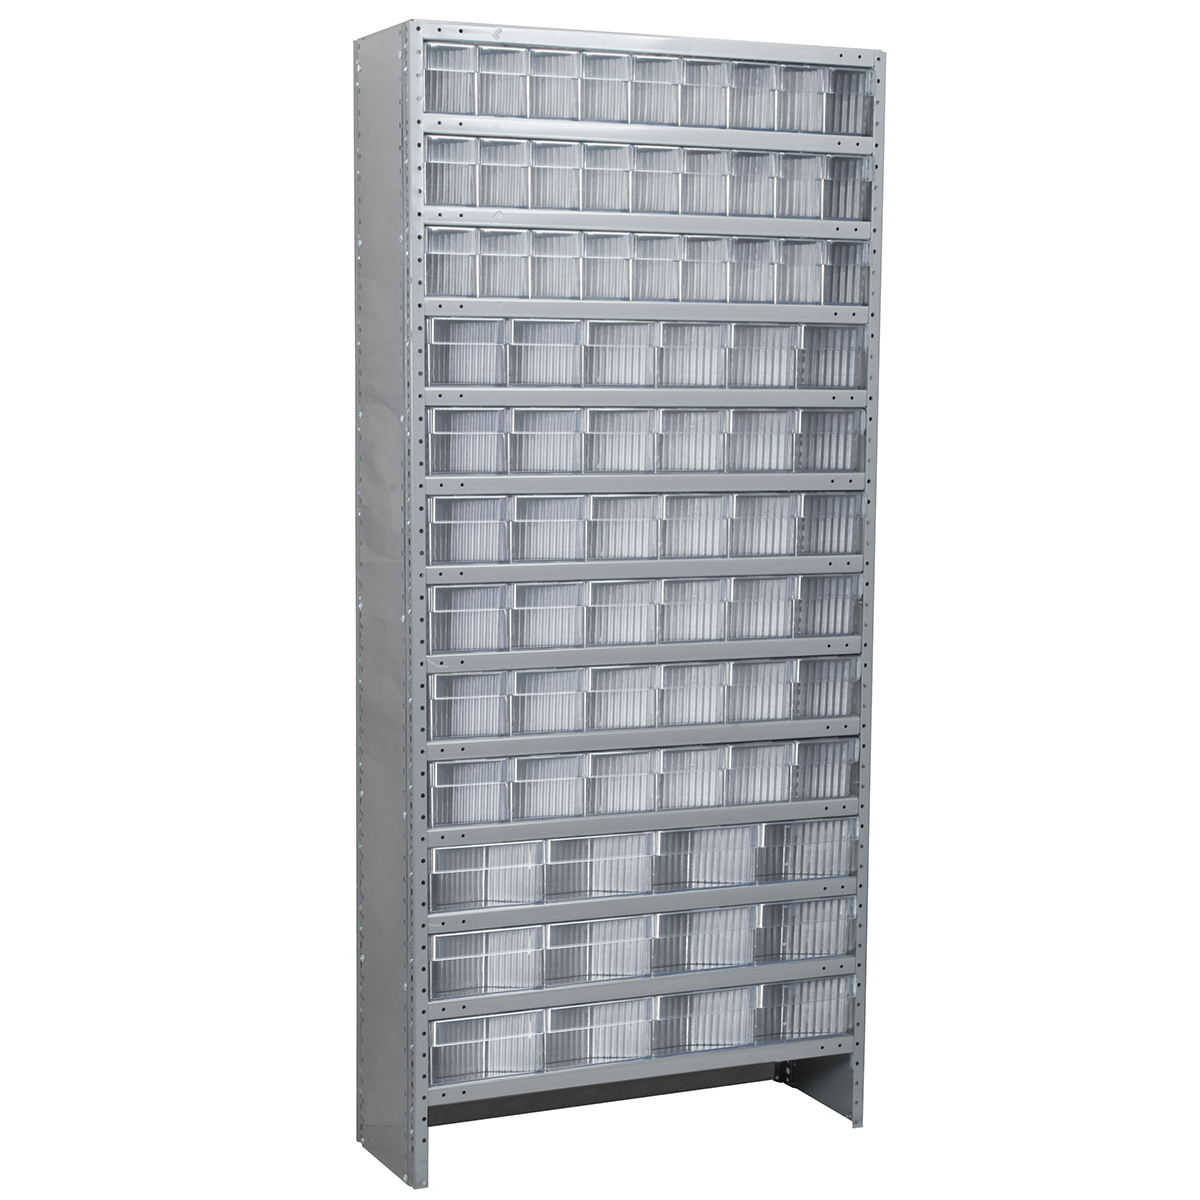 Enclosed Steel Shelving Kit, 12x36x79, 78 AkroDrawers, Gray/Clear.  This item sold in carton quantities of 1.